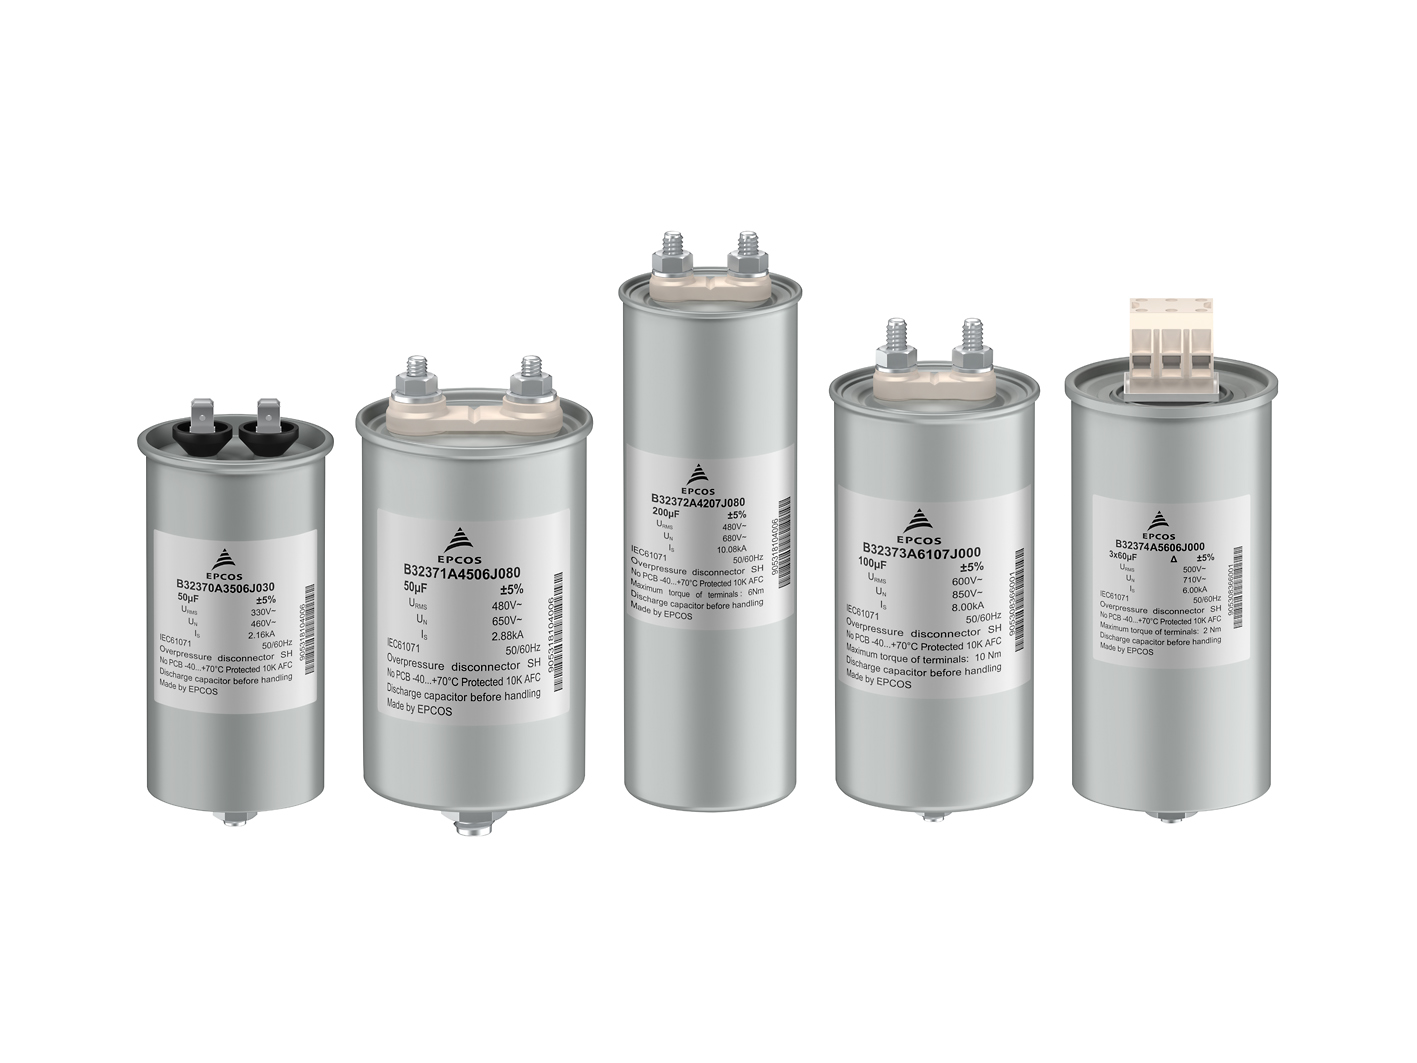 Single-Phase Power Capacitors Designed for Rated AC Voltages of Between 250 Vrms and 600 Vrms